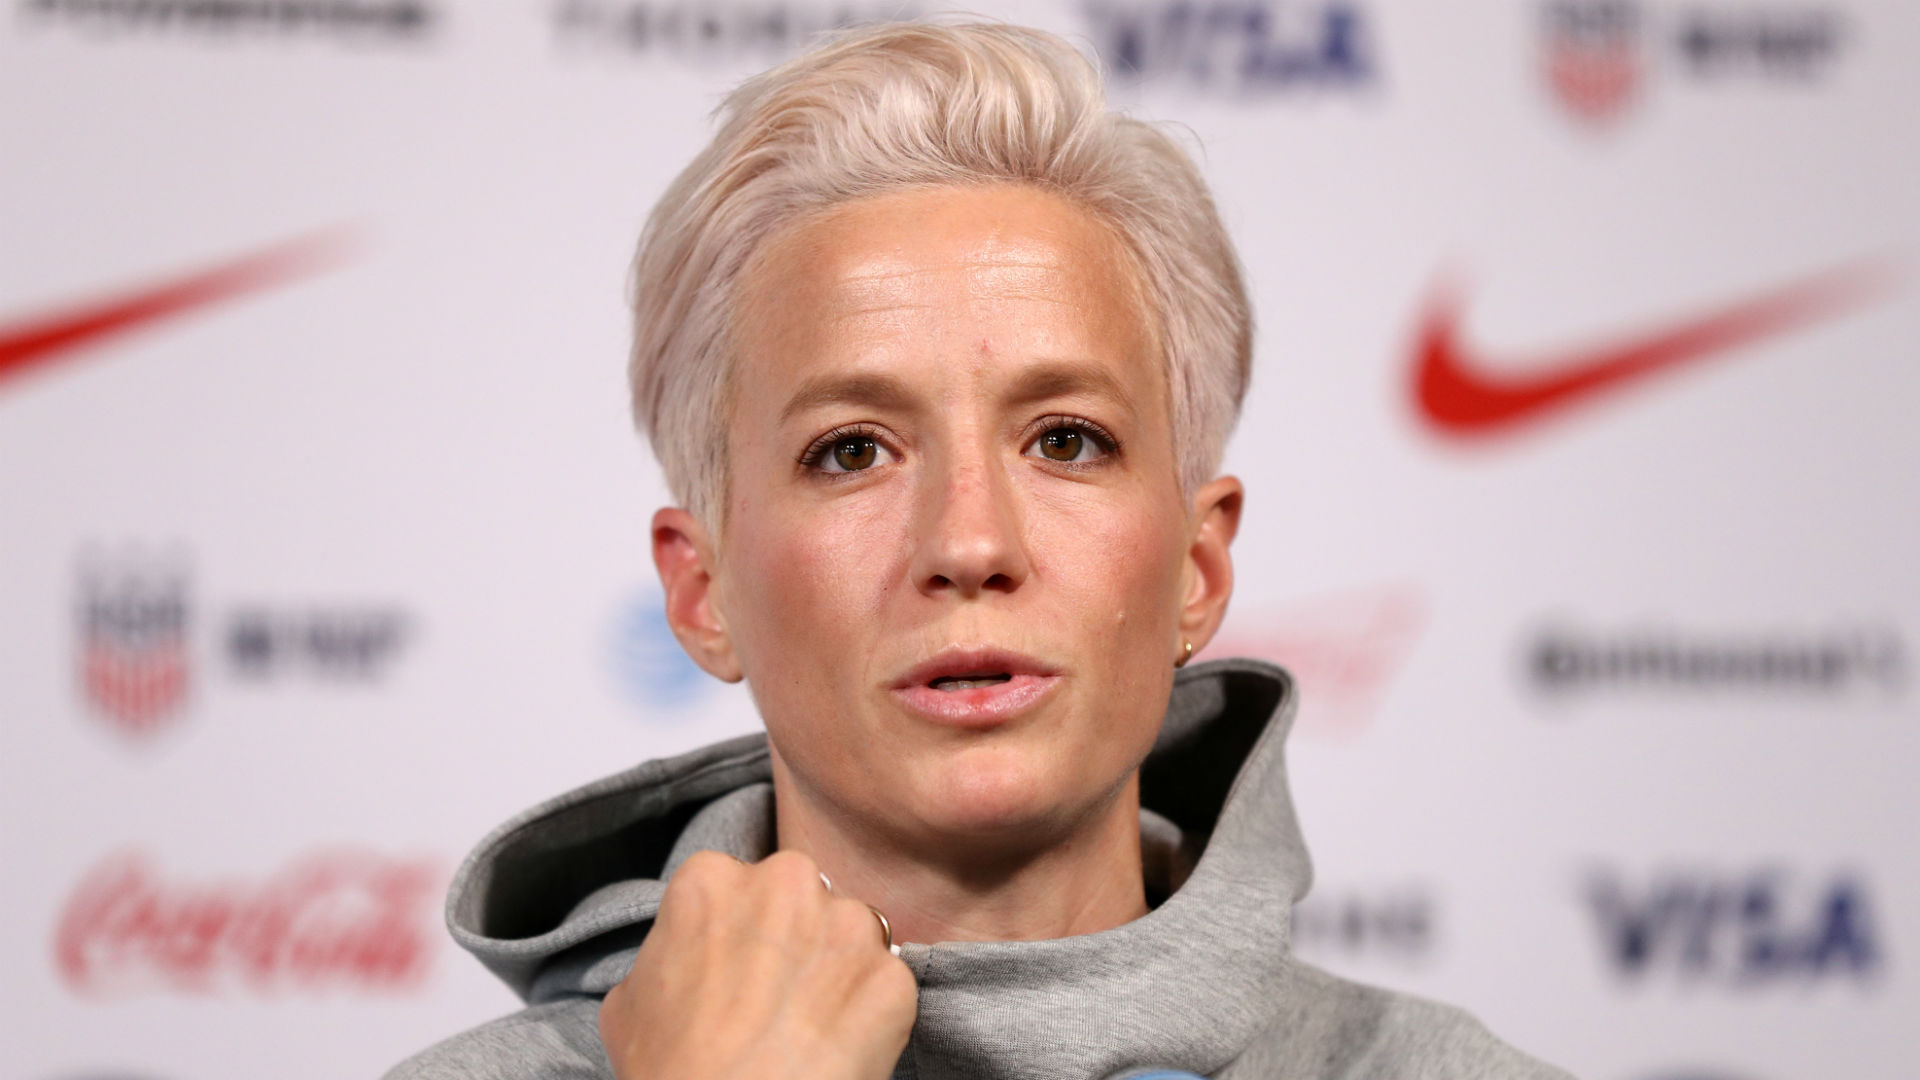 Megan Rapinoe uses World Cup platform to promote equality in women's sports